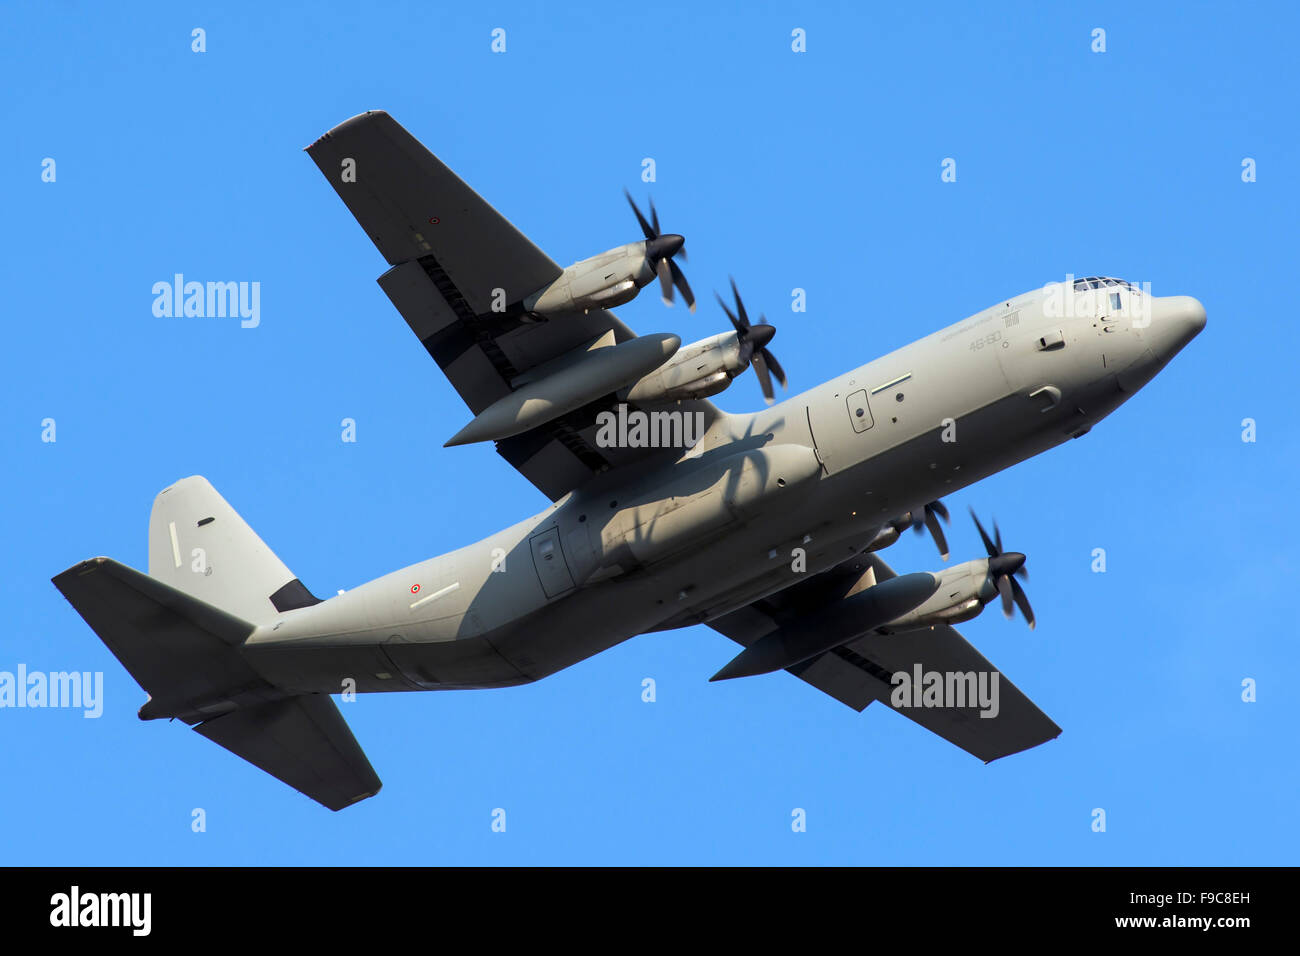 An Italian Air Force C-130J-30 during takeoff from Verona airport, Italy. - Stock Image